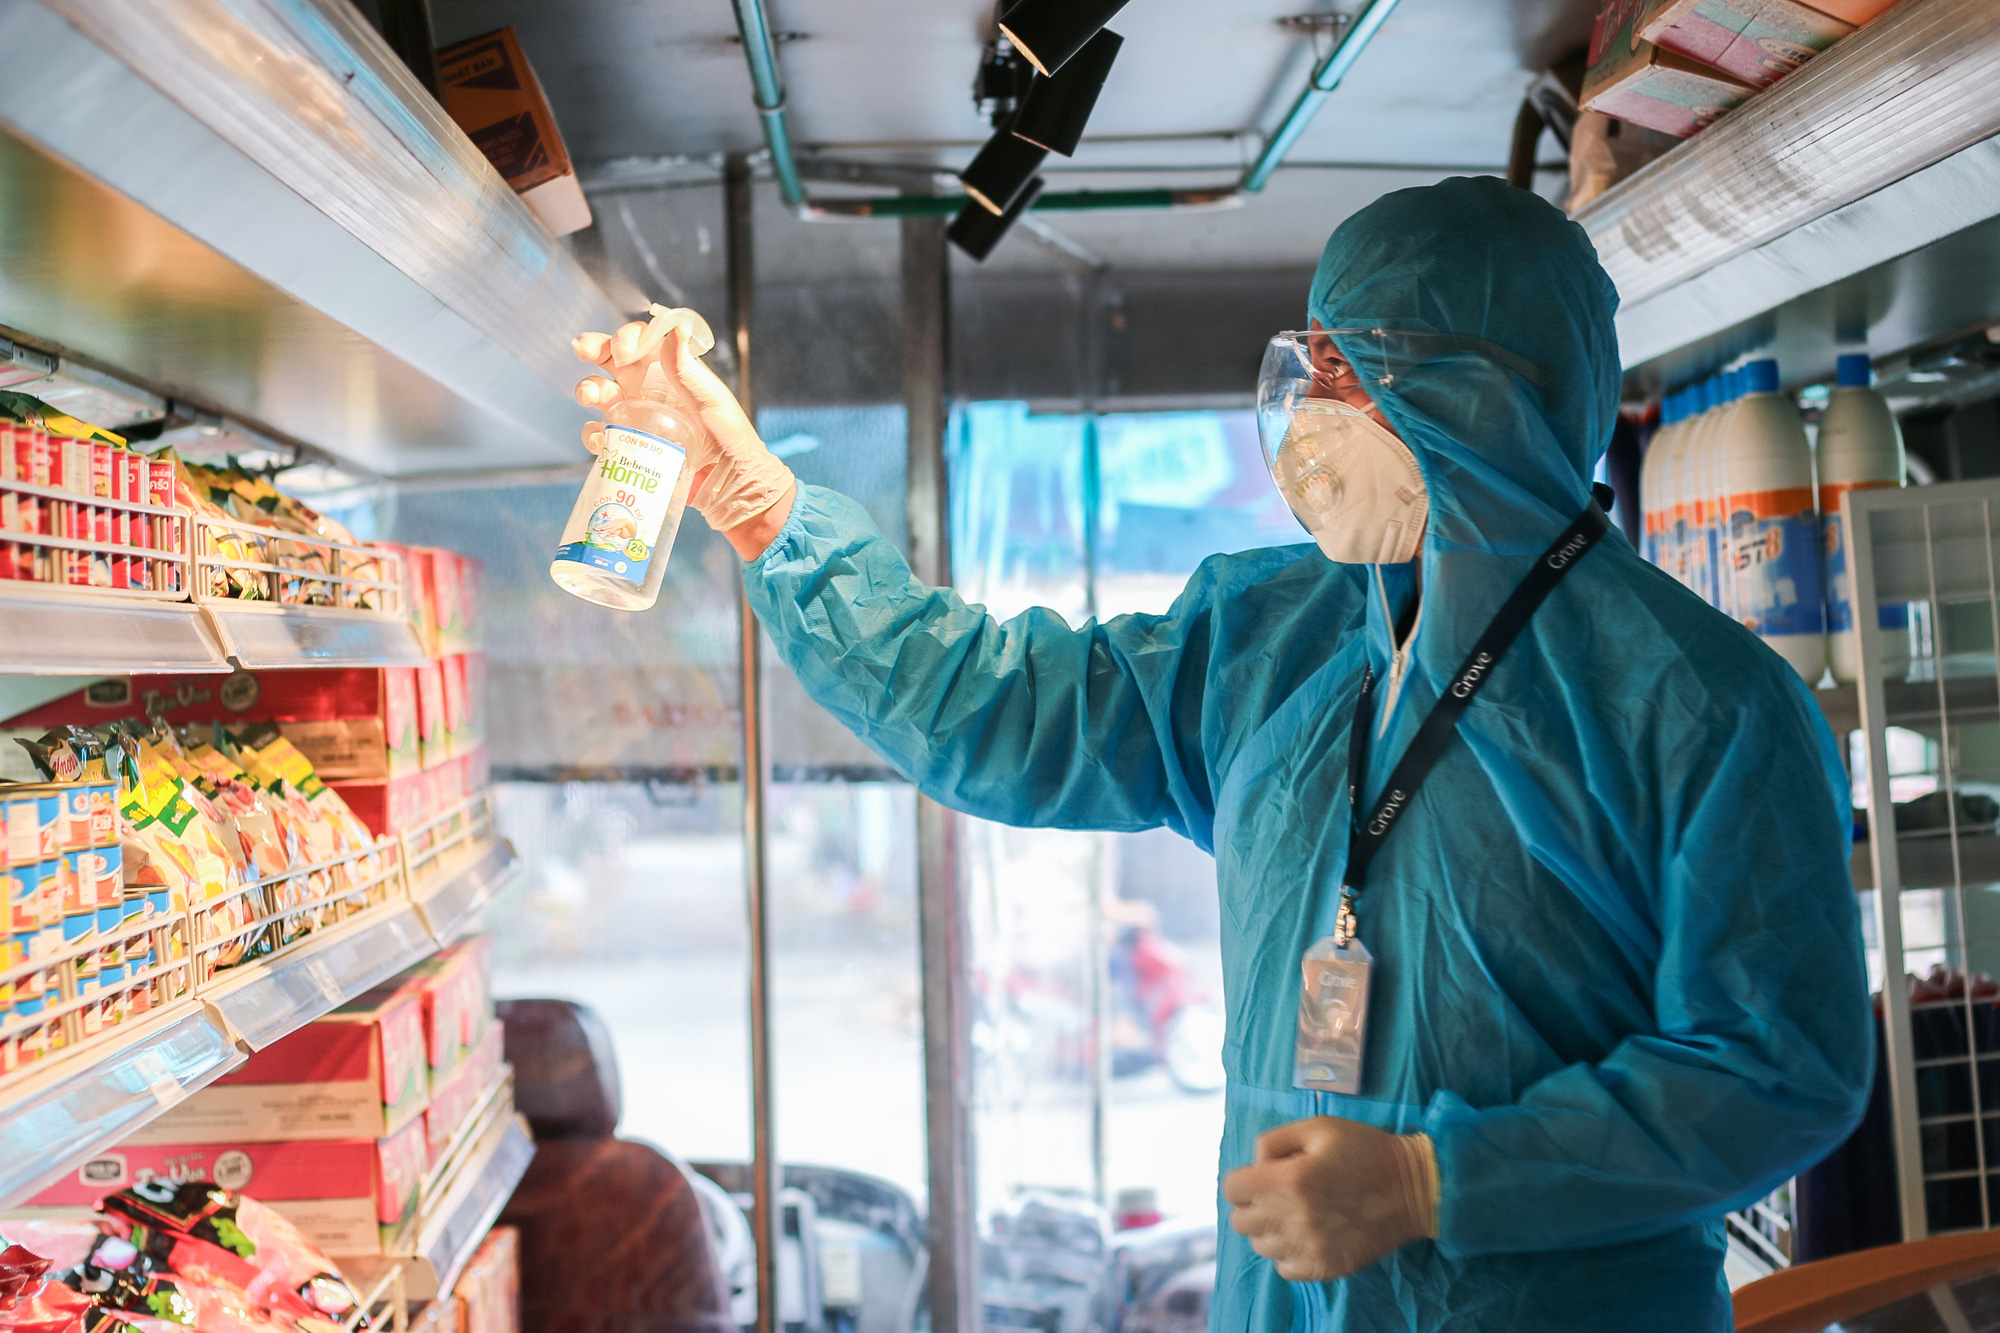 An employee disinfects the shelves after customers exit the mobile mini-supermarket. Photo: Kim Ut / Tuoi Tre